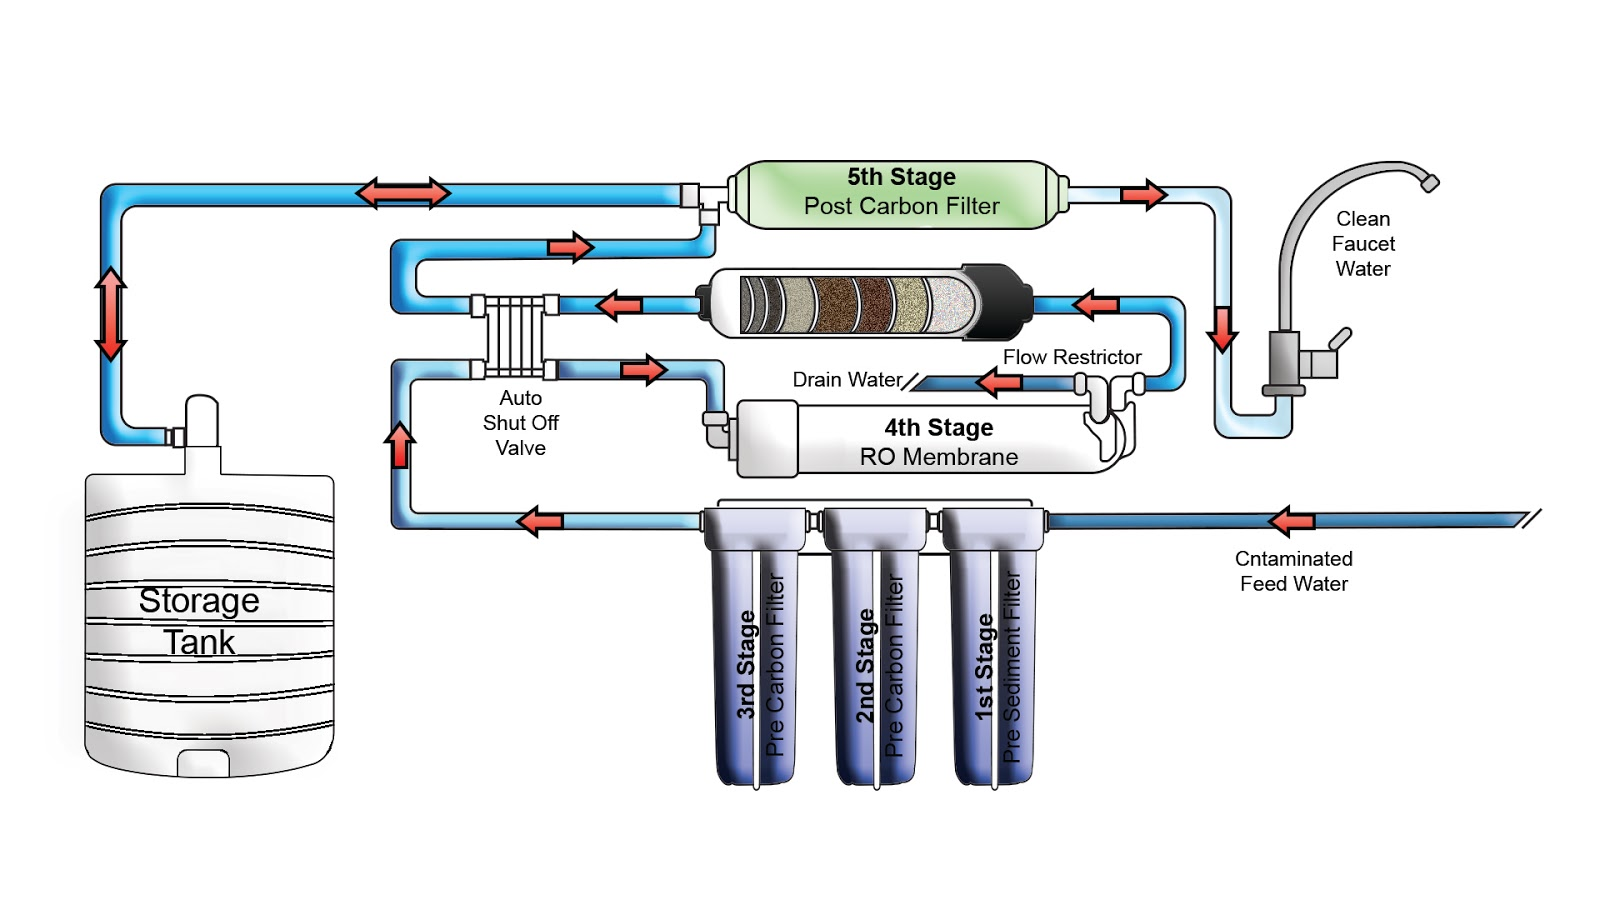 Composite Solenoid Valves For Reverse Osmosis Water